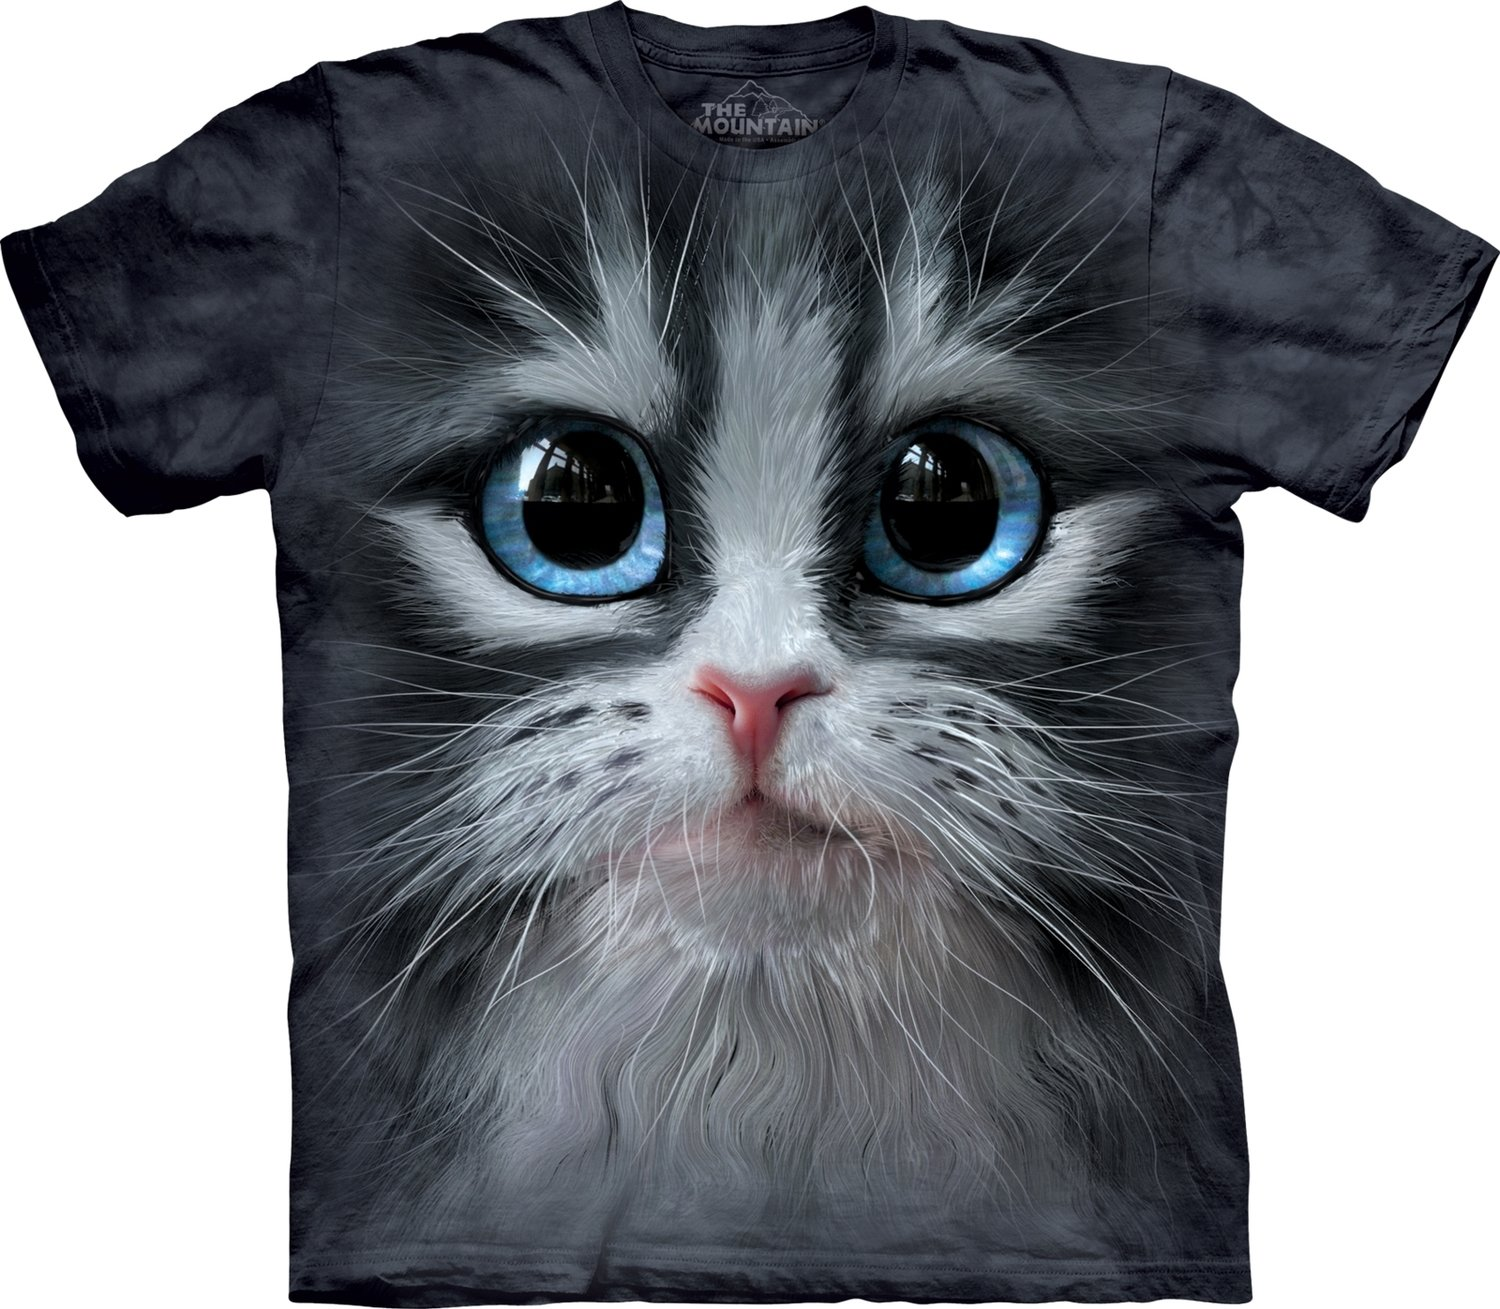 T-Shirt Cutie Pie Kitten